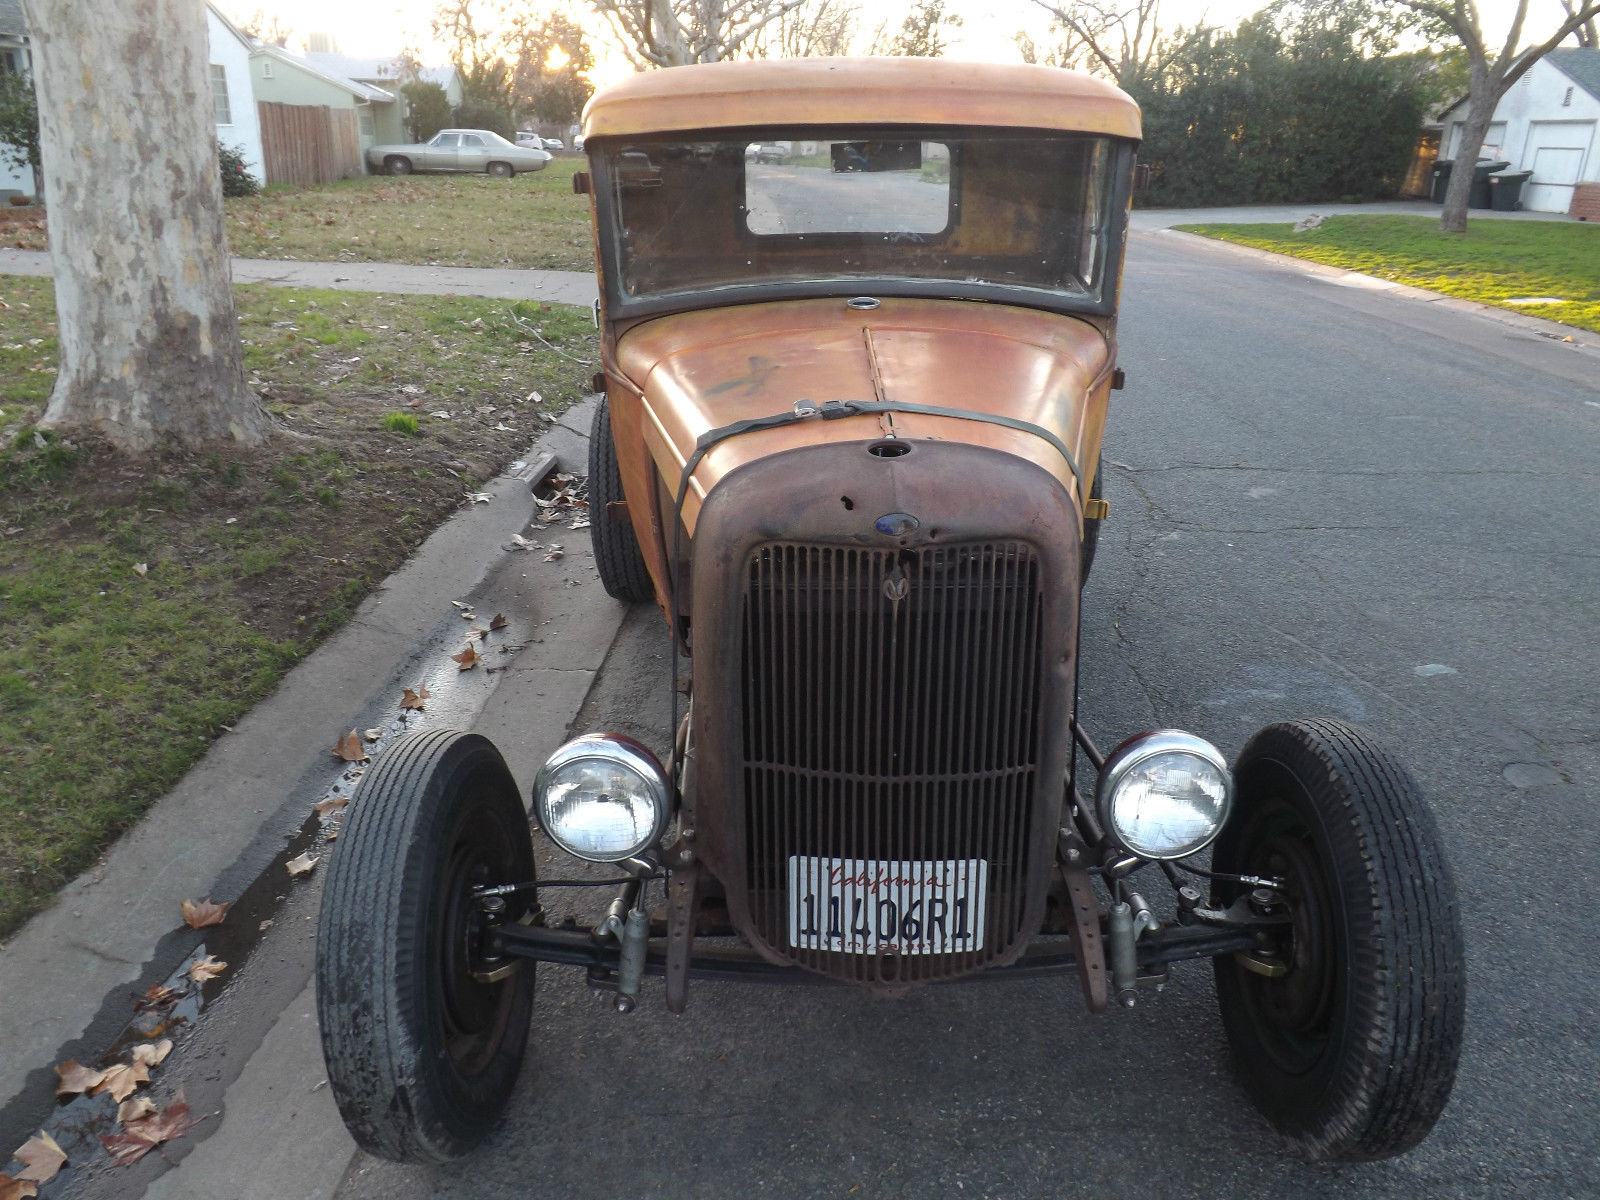 Late 1931 Pick Uptruck Sbc V8 Hot Rat Rod Custom Daily Driver No 1955 Ford F100 Wide Bed Reserve